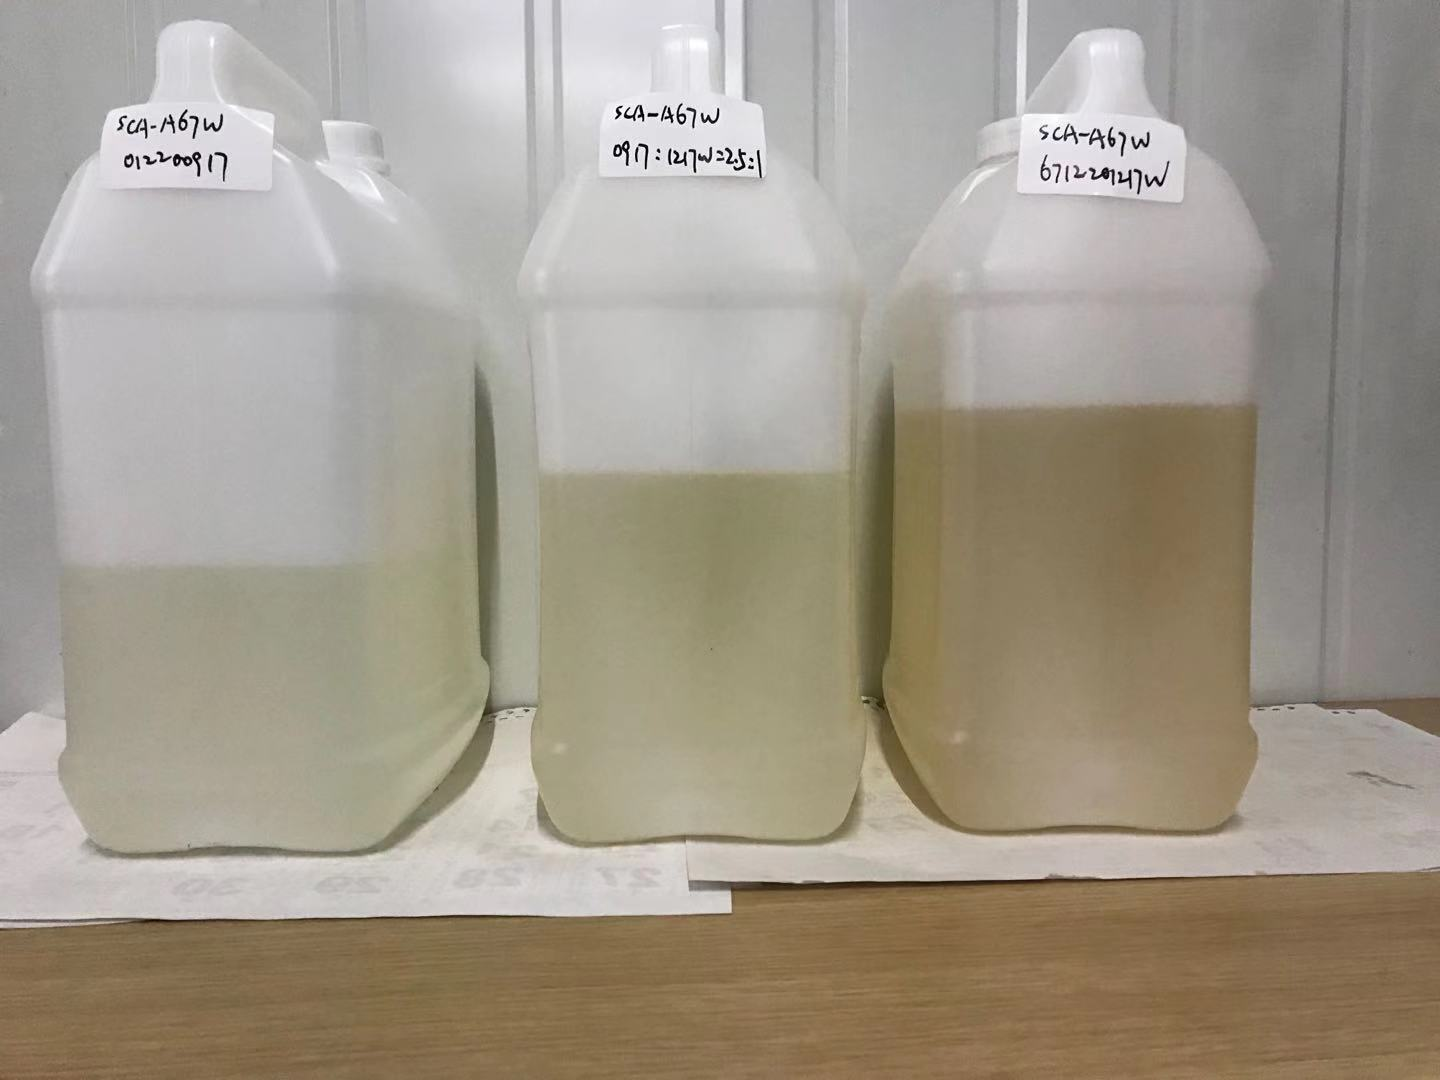 we can supply colorless amino silane A-1170(SCA-A67W)